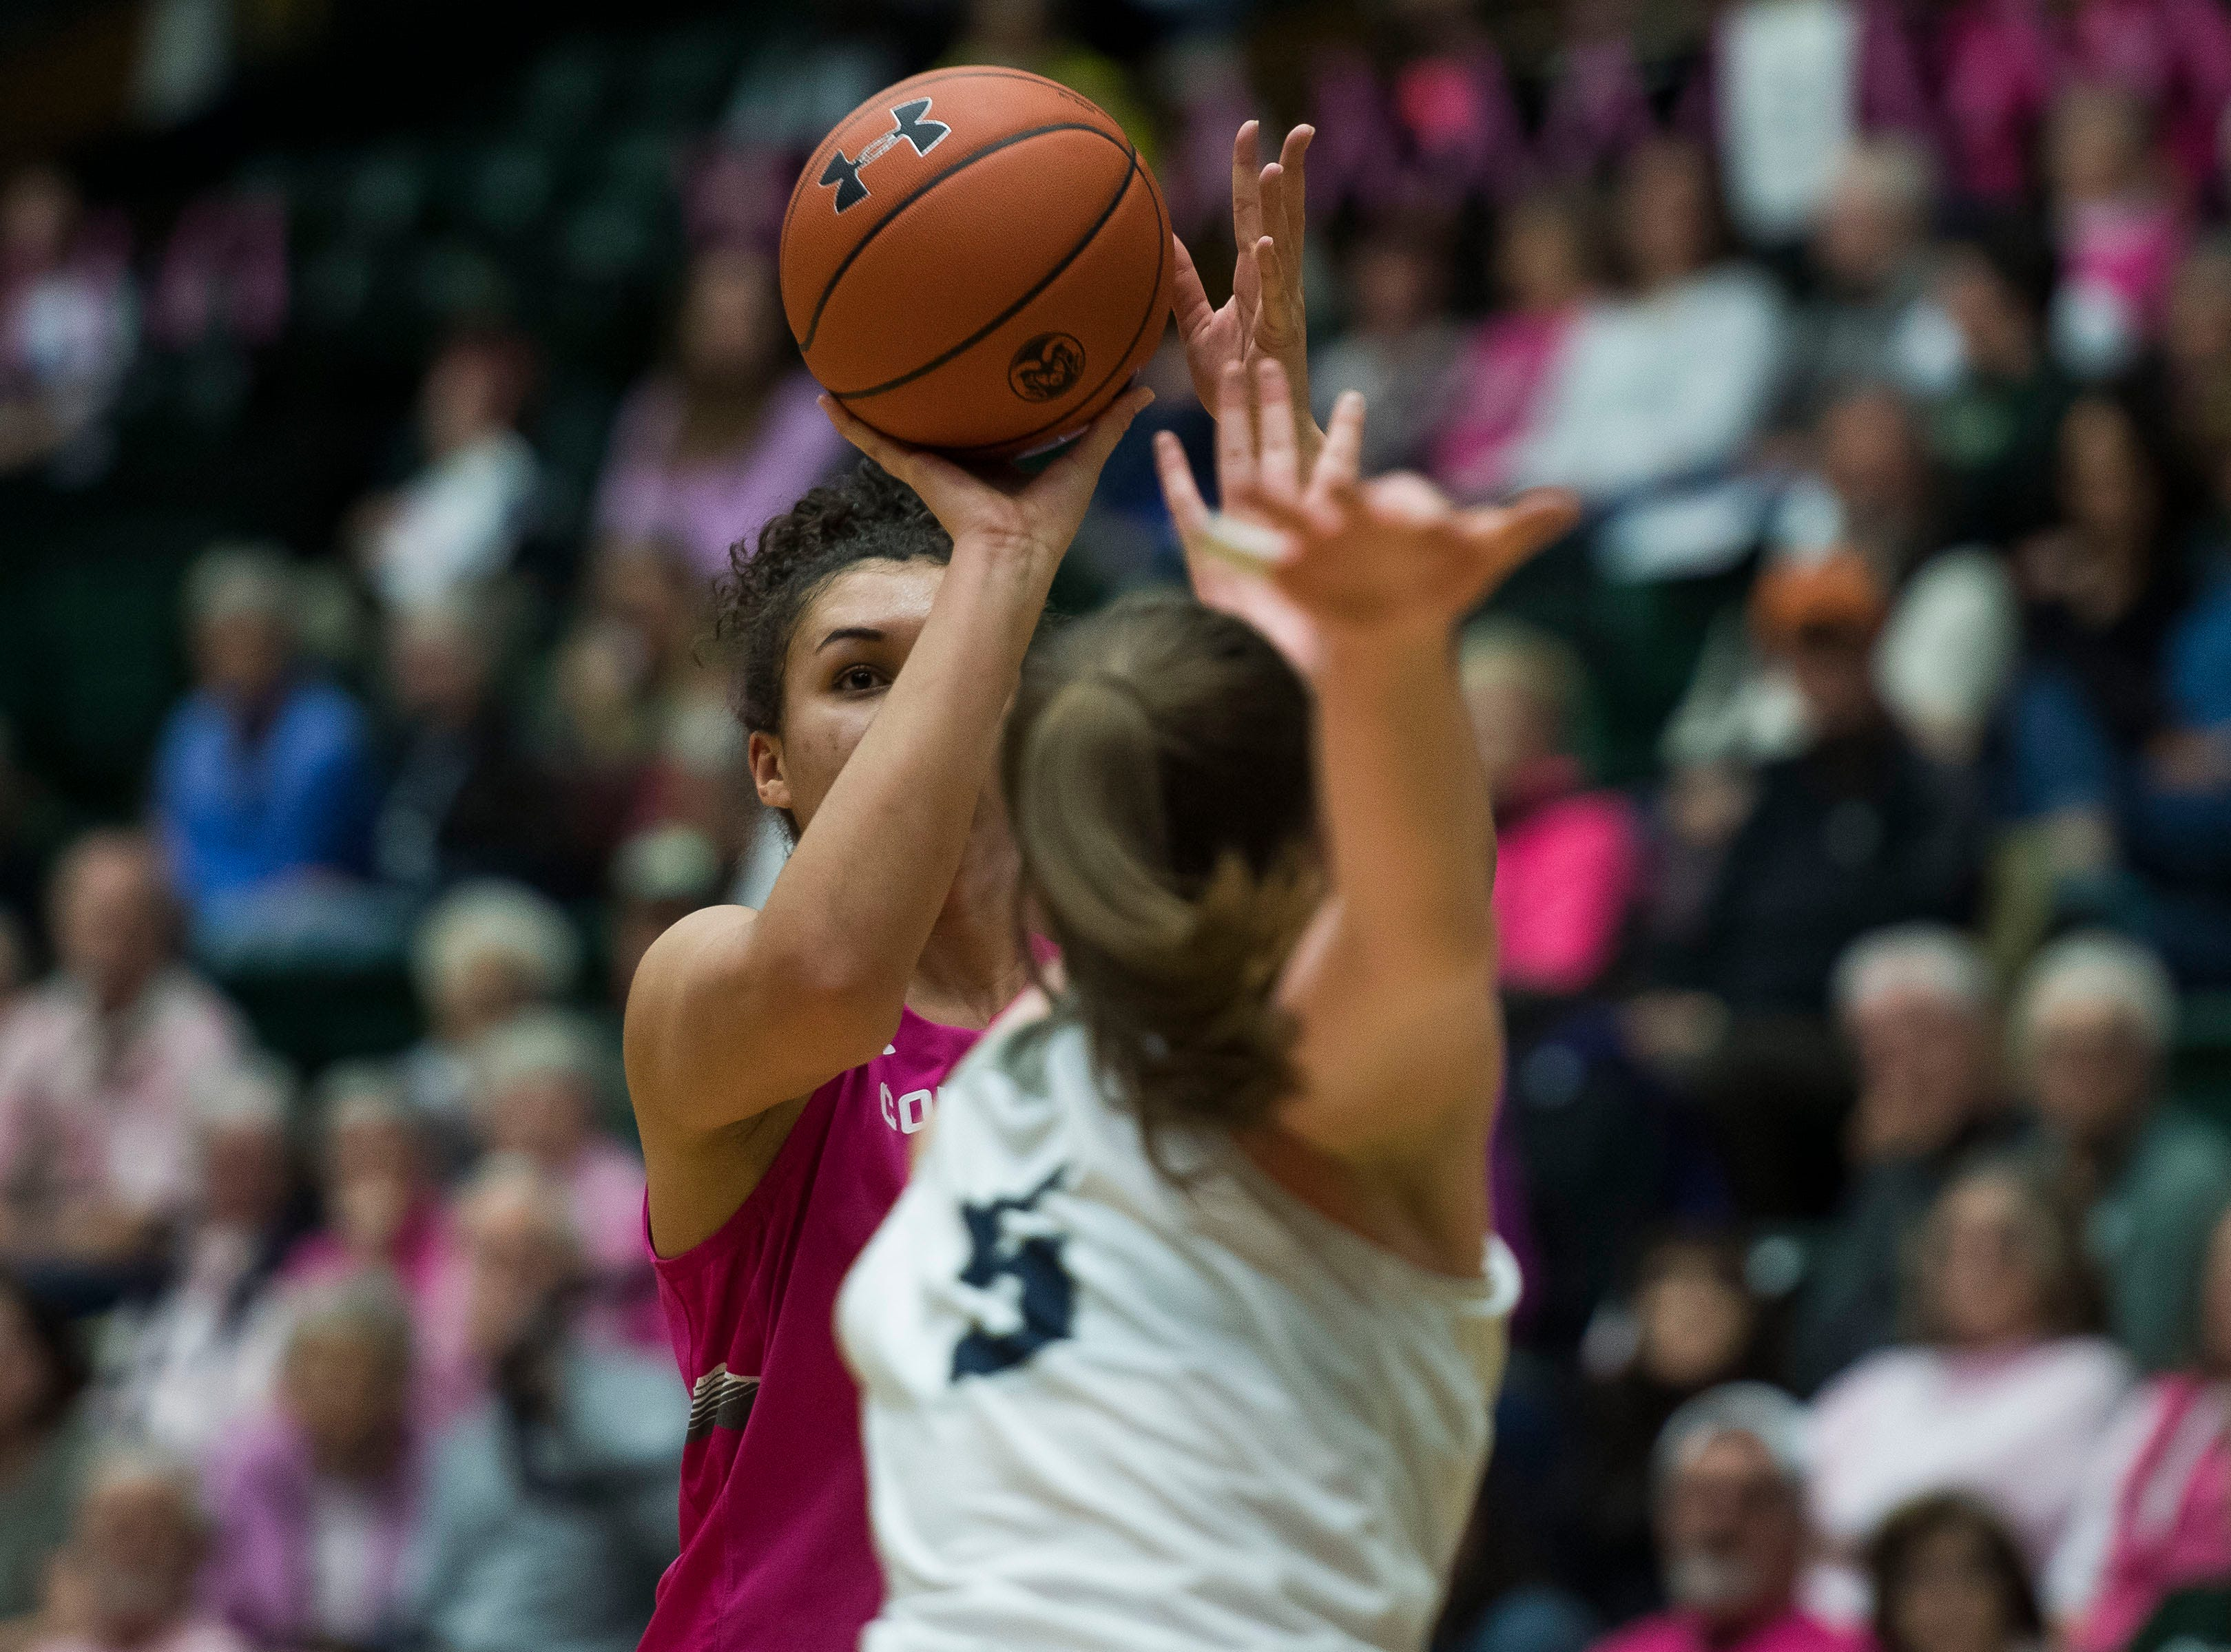 Colorado State University senior guard Myanne Hamm (21) attempts a long shot during a game against Utah State on Saturday, Jan. 19, 2019, at Moby Arena in Fort Collins, Colo.